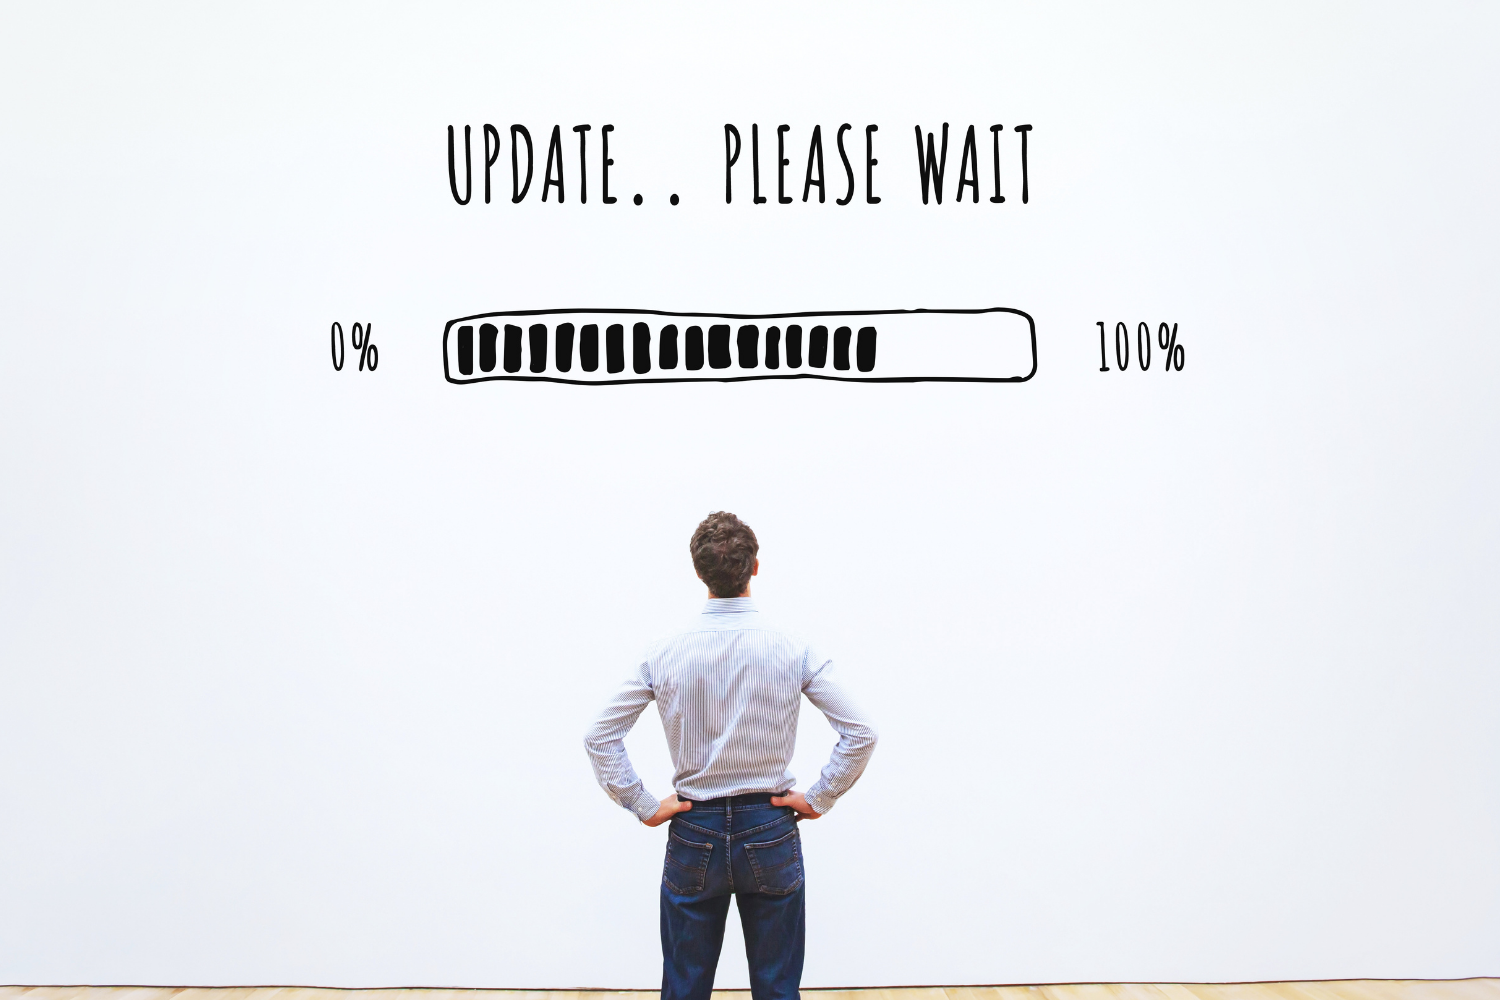 Image of man standing infront of a large screen waiting for software to download